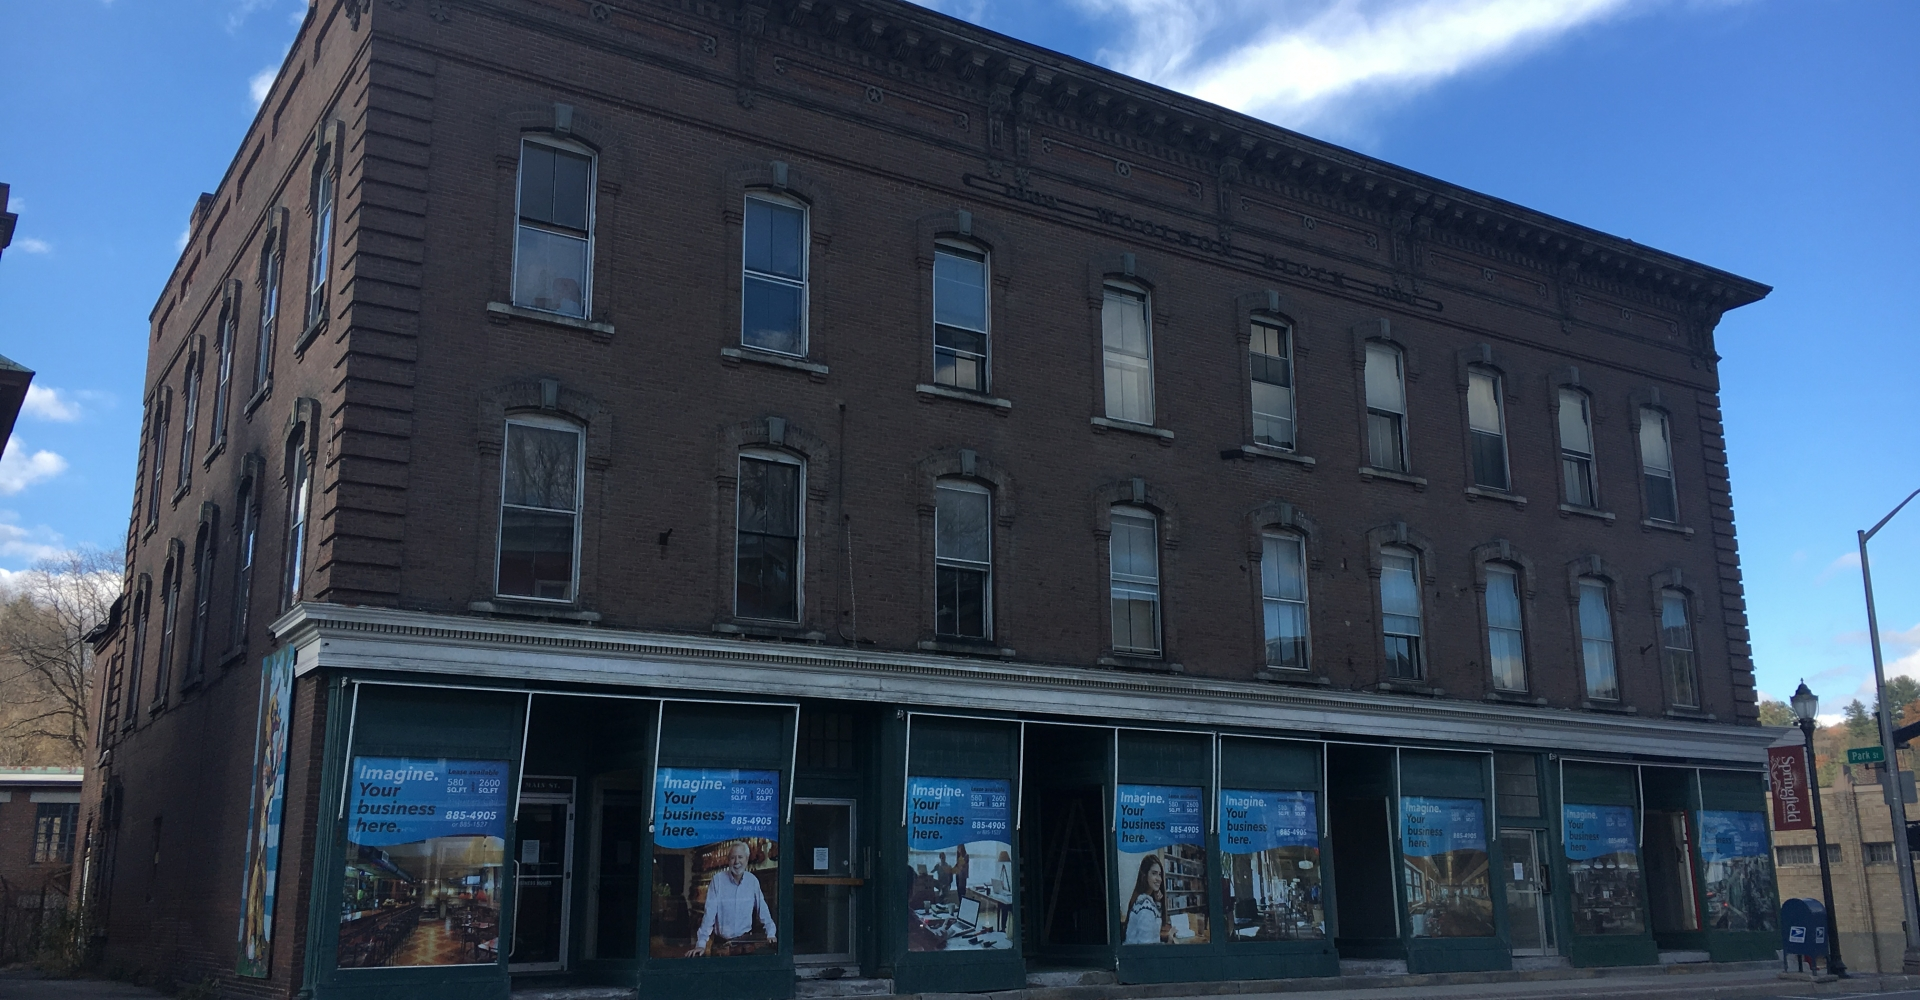 Woolson Block, Sprinfield - historic downtown building with 20 new apartments and 4 units service-supported transitional housing for at risk young adults with a live-in supervisor, developed by Springfield Housing Authority and Housing Vermont